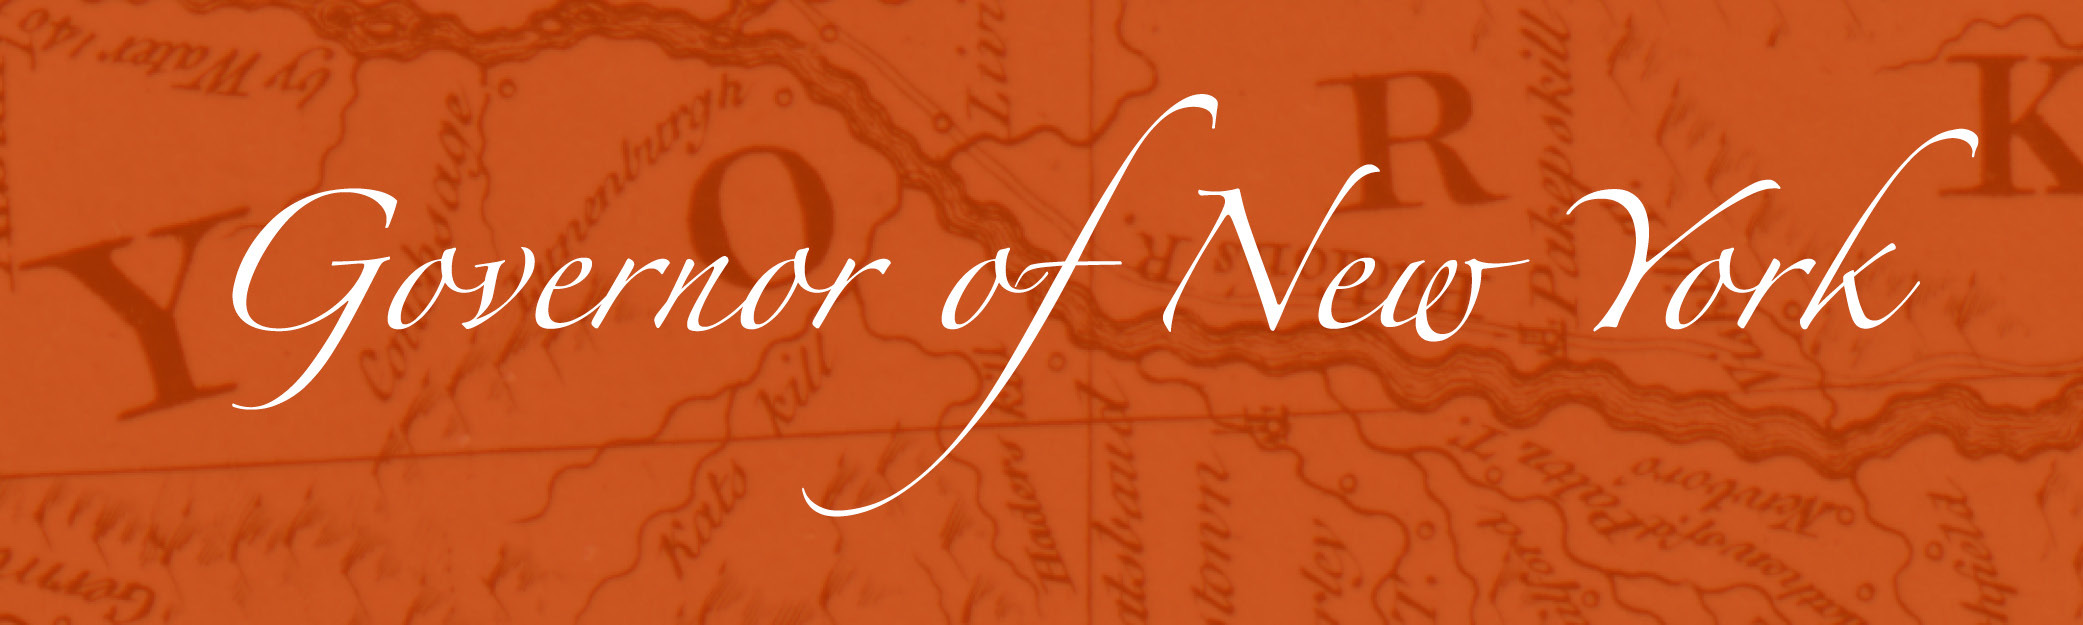 Governor of New York Banner